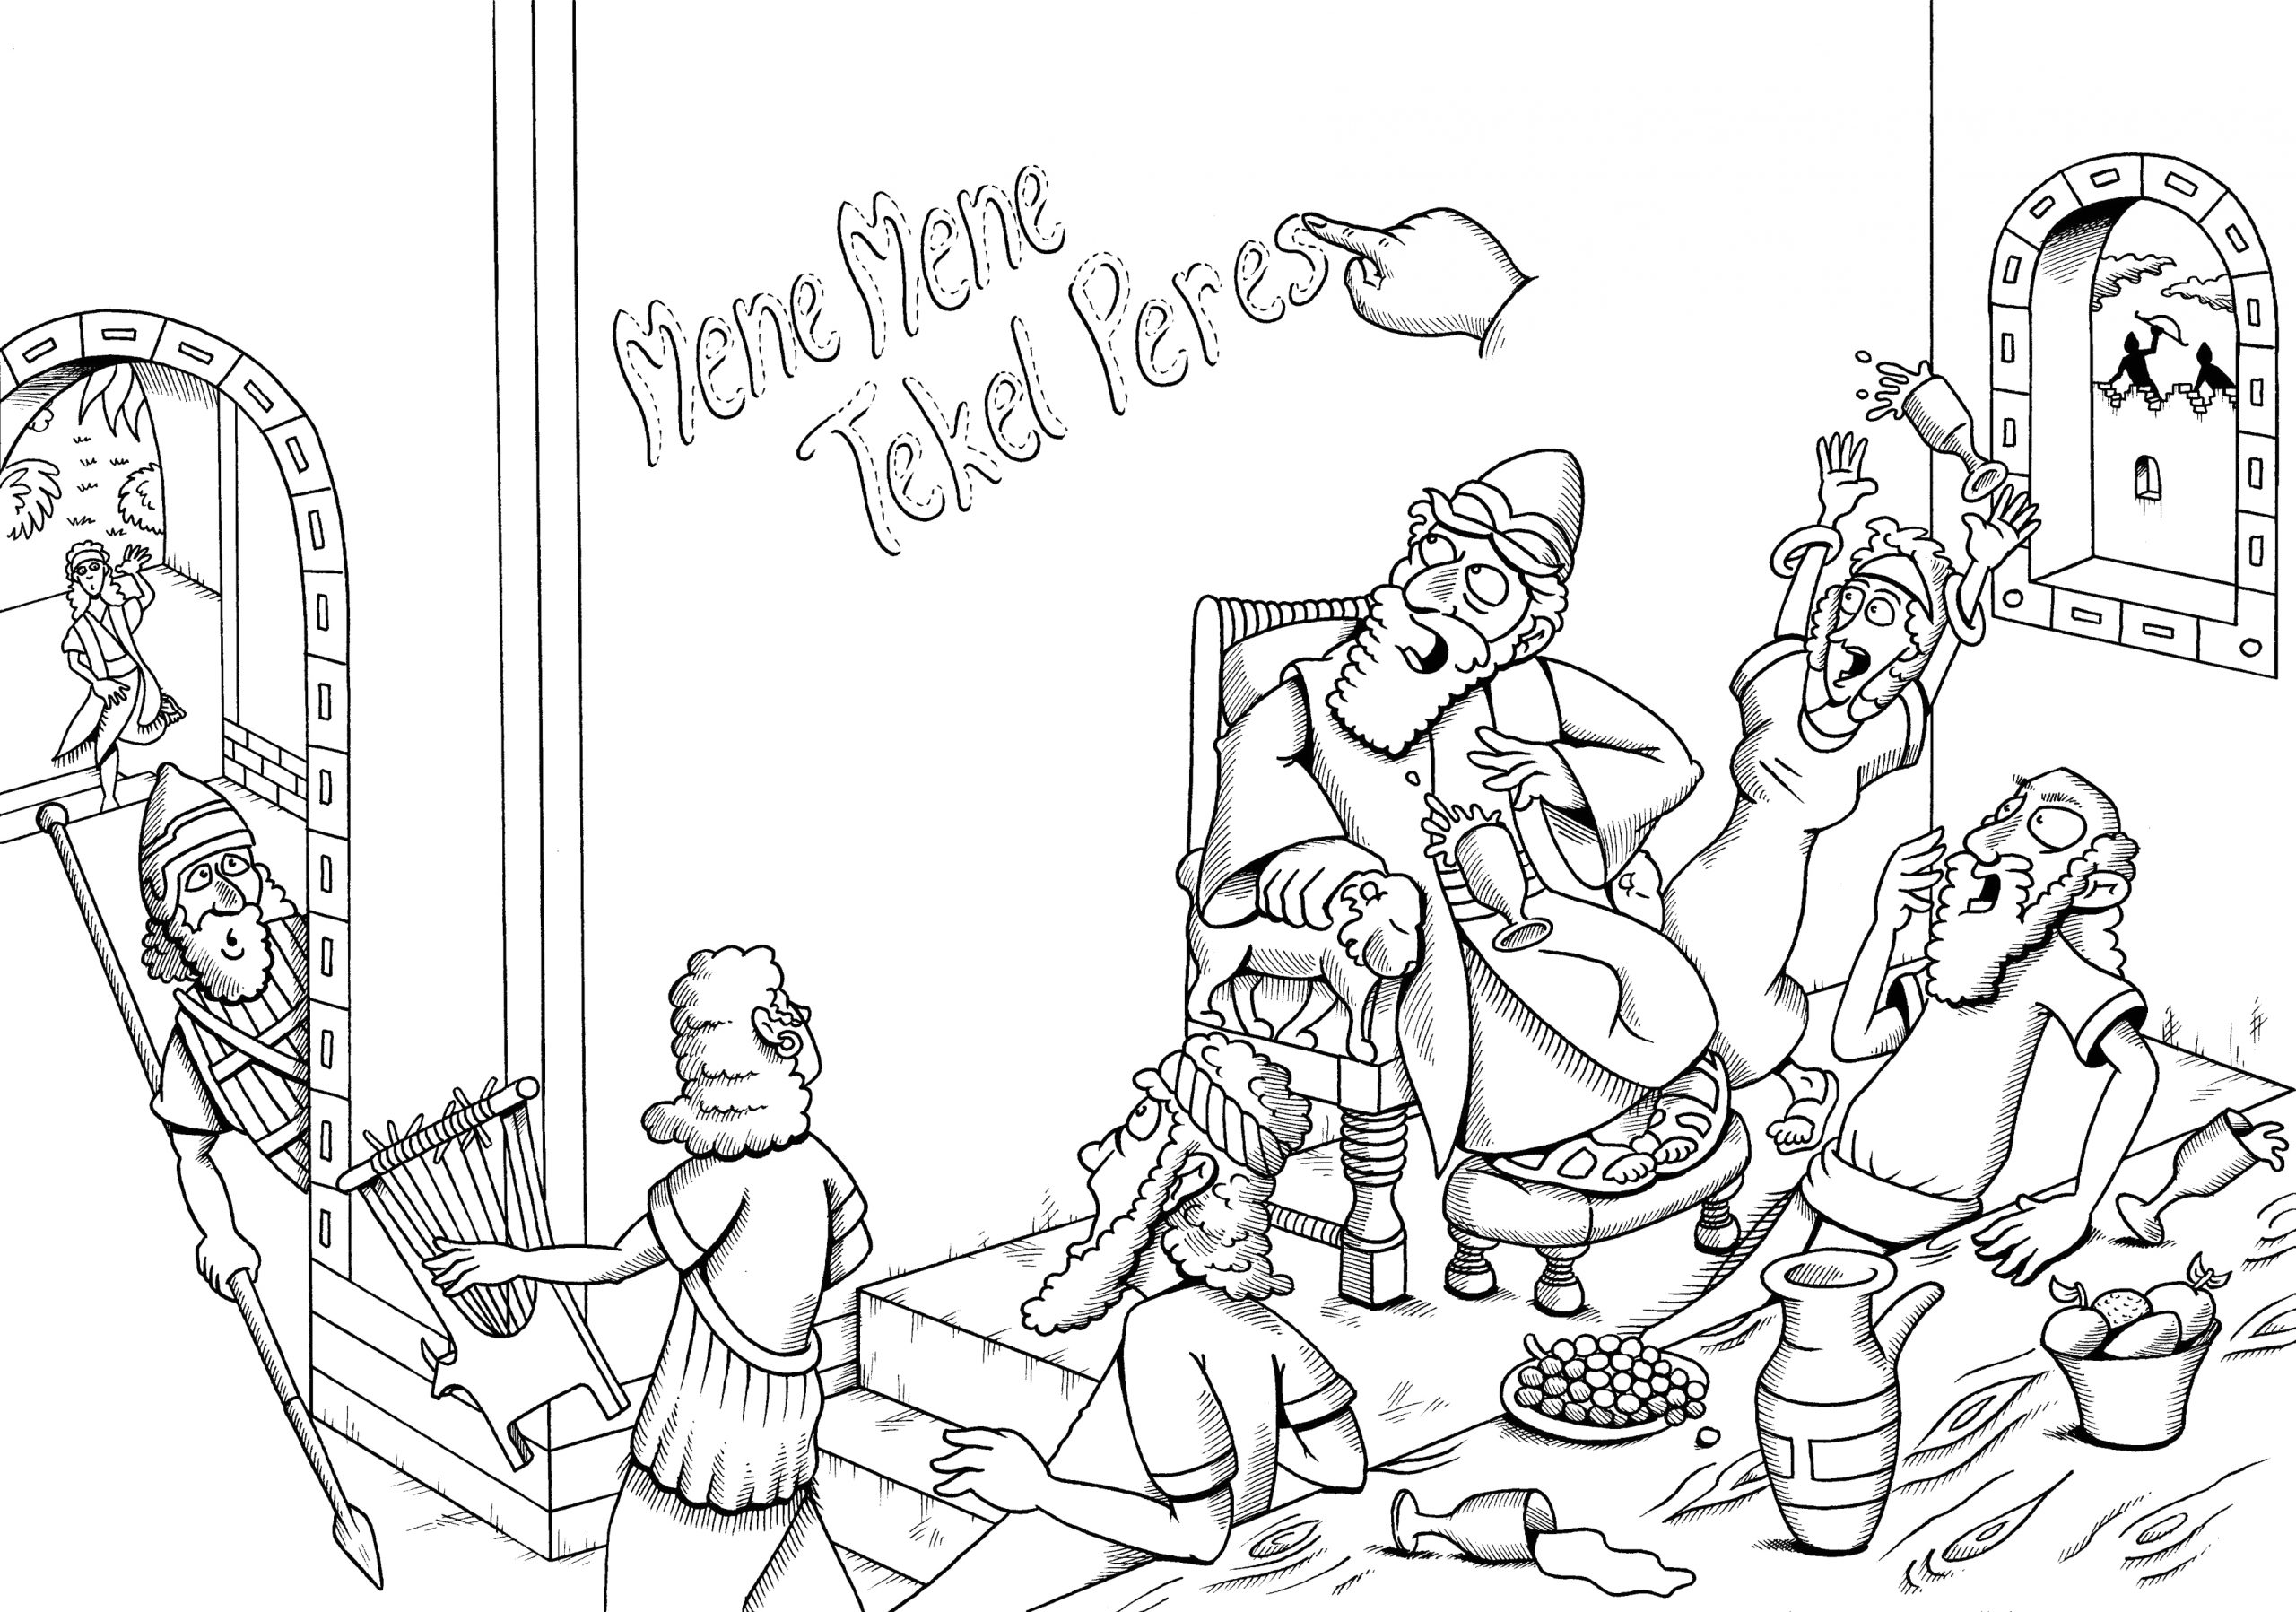 Daniel Writing On the Wall Coloring Page Daniel Writing the Wall Coloring Page Coloring Pages